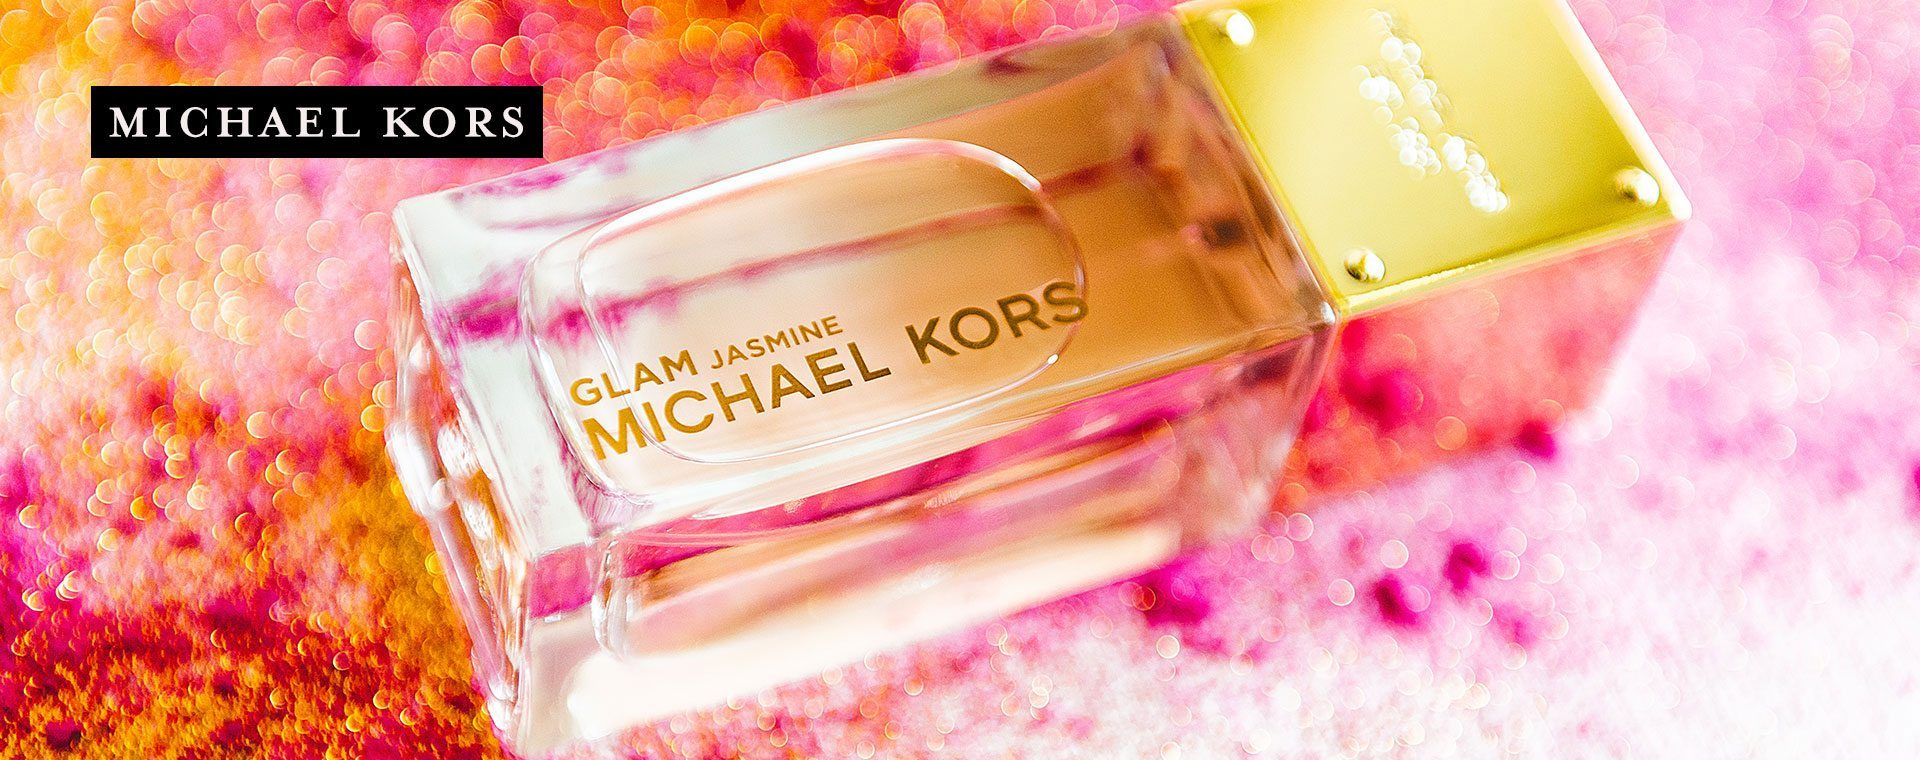 Naina.co Luxury Lifestyle Photographer Blogger Storyteller : Michael Kors